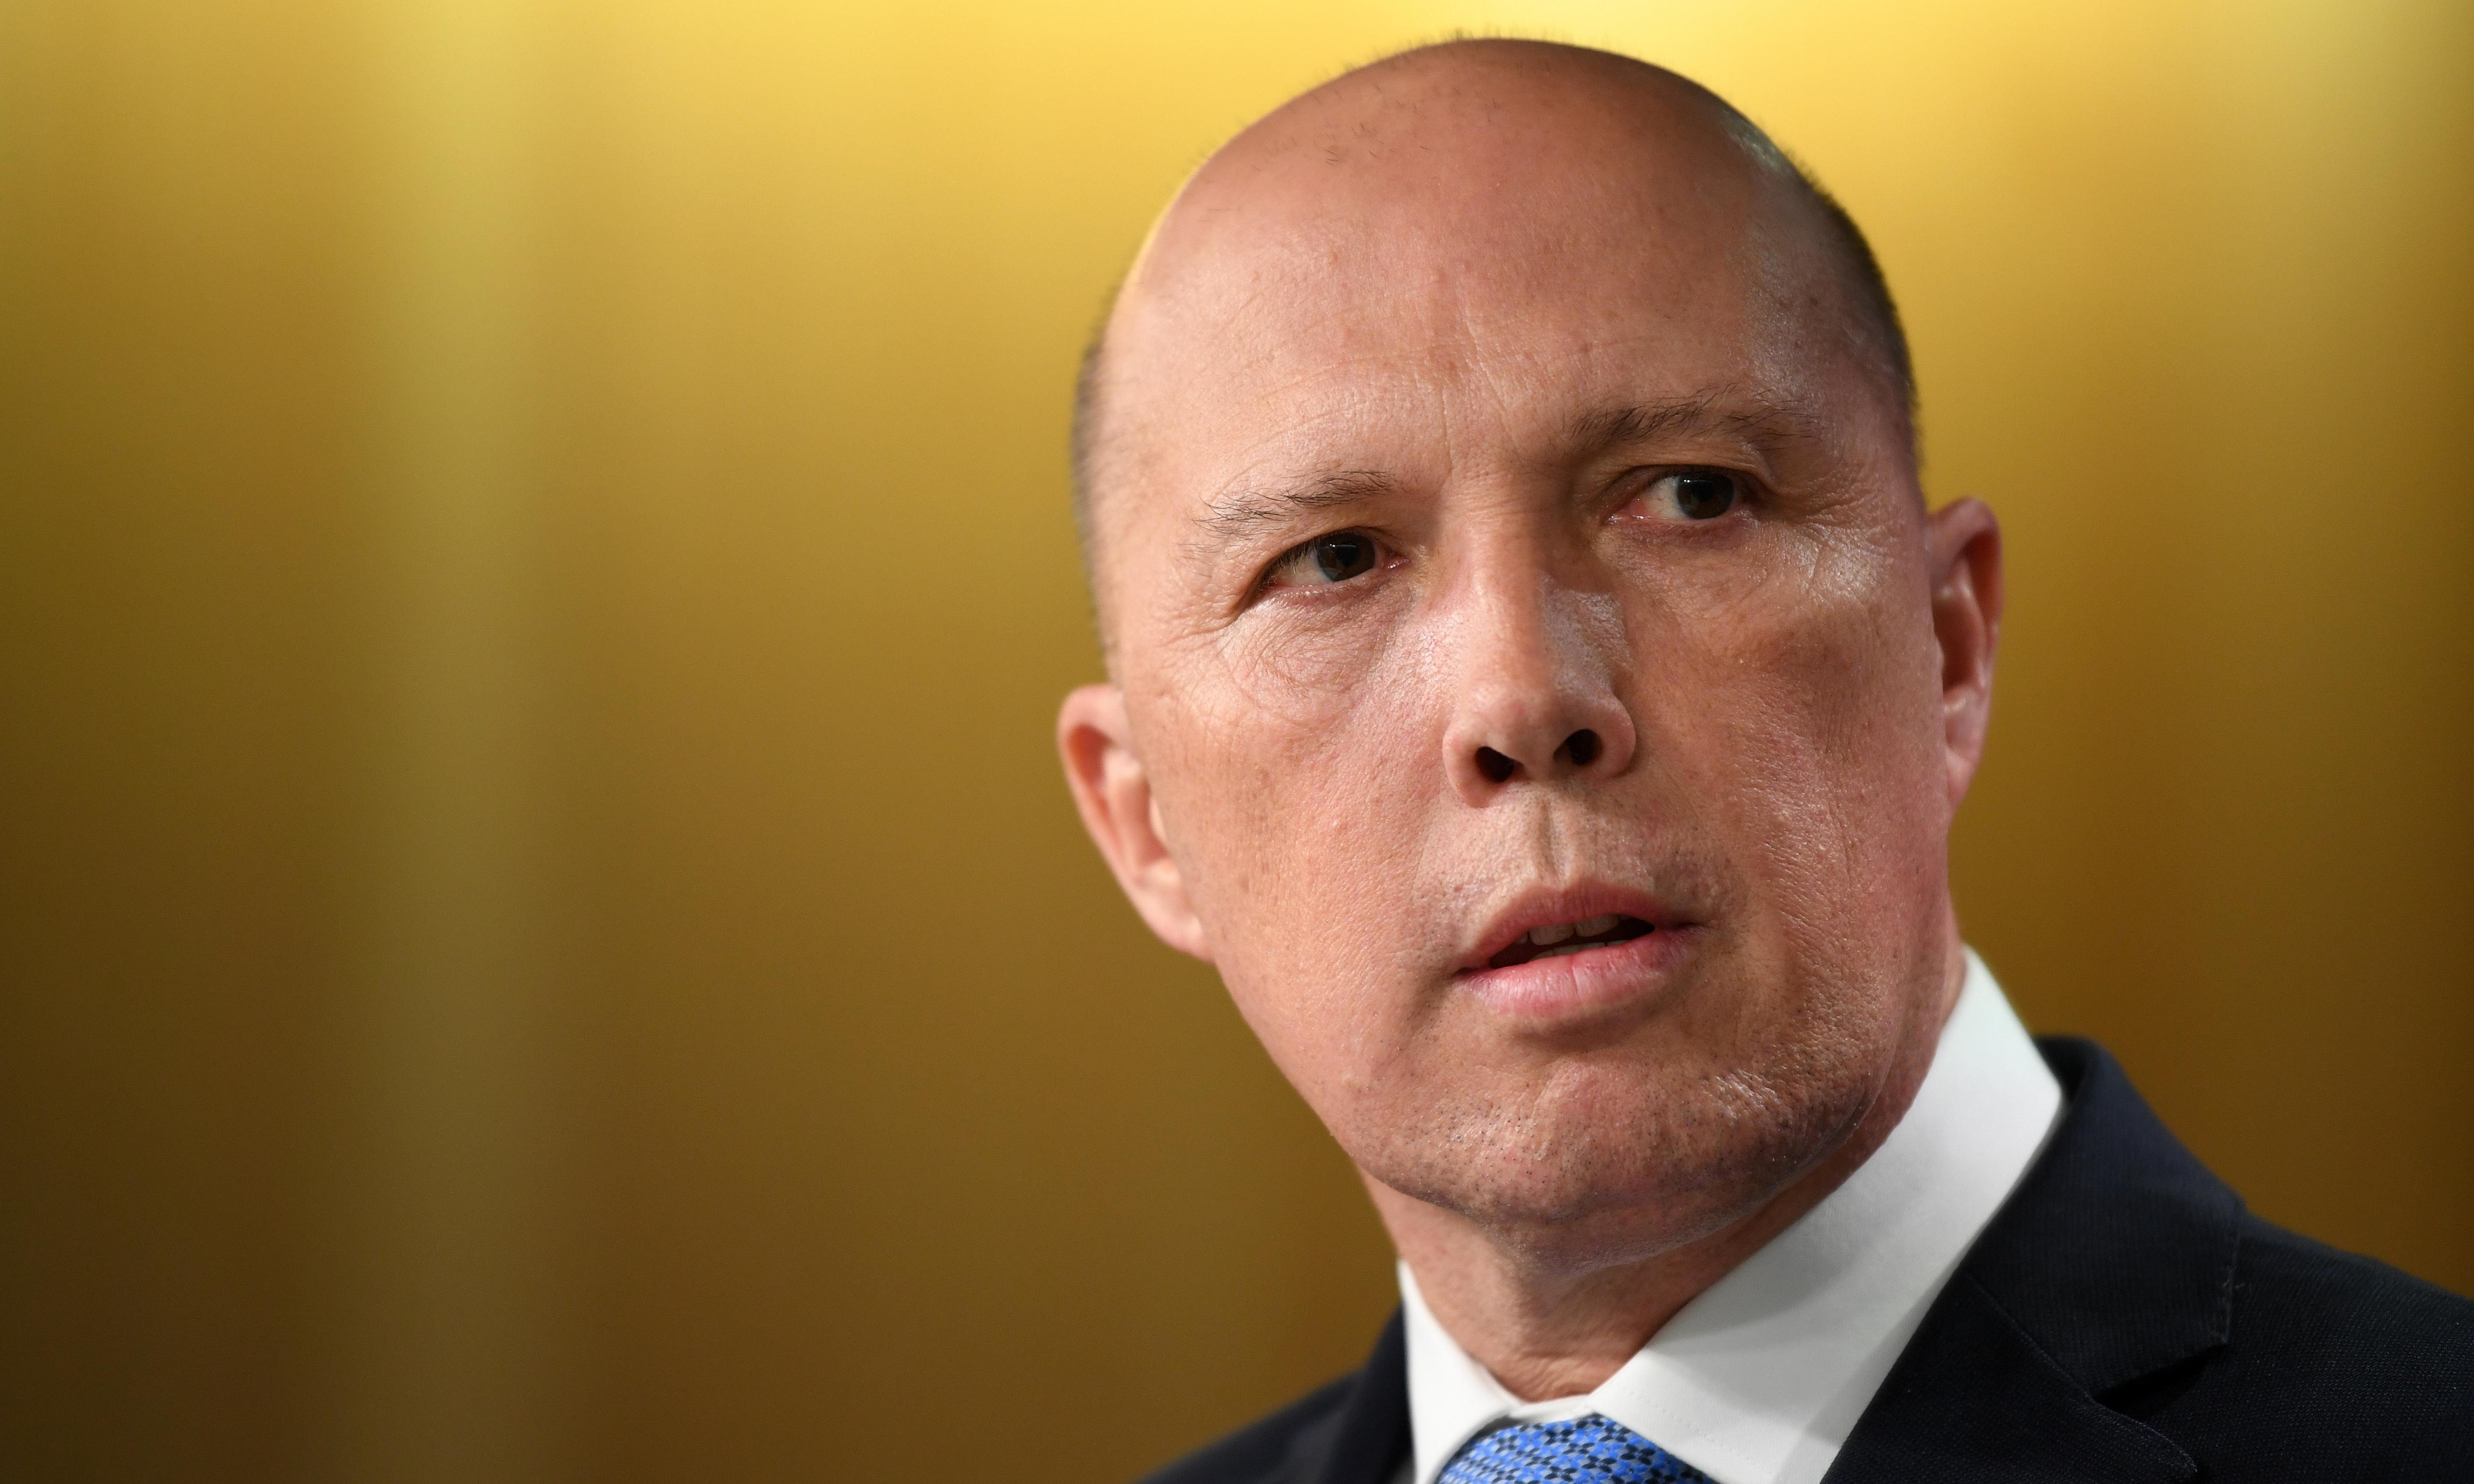 Dutton's citizenship-stripping laws may increase risk of terrorism, Asio warns